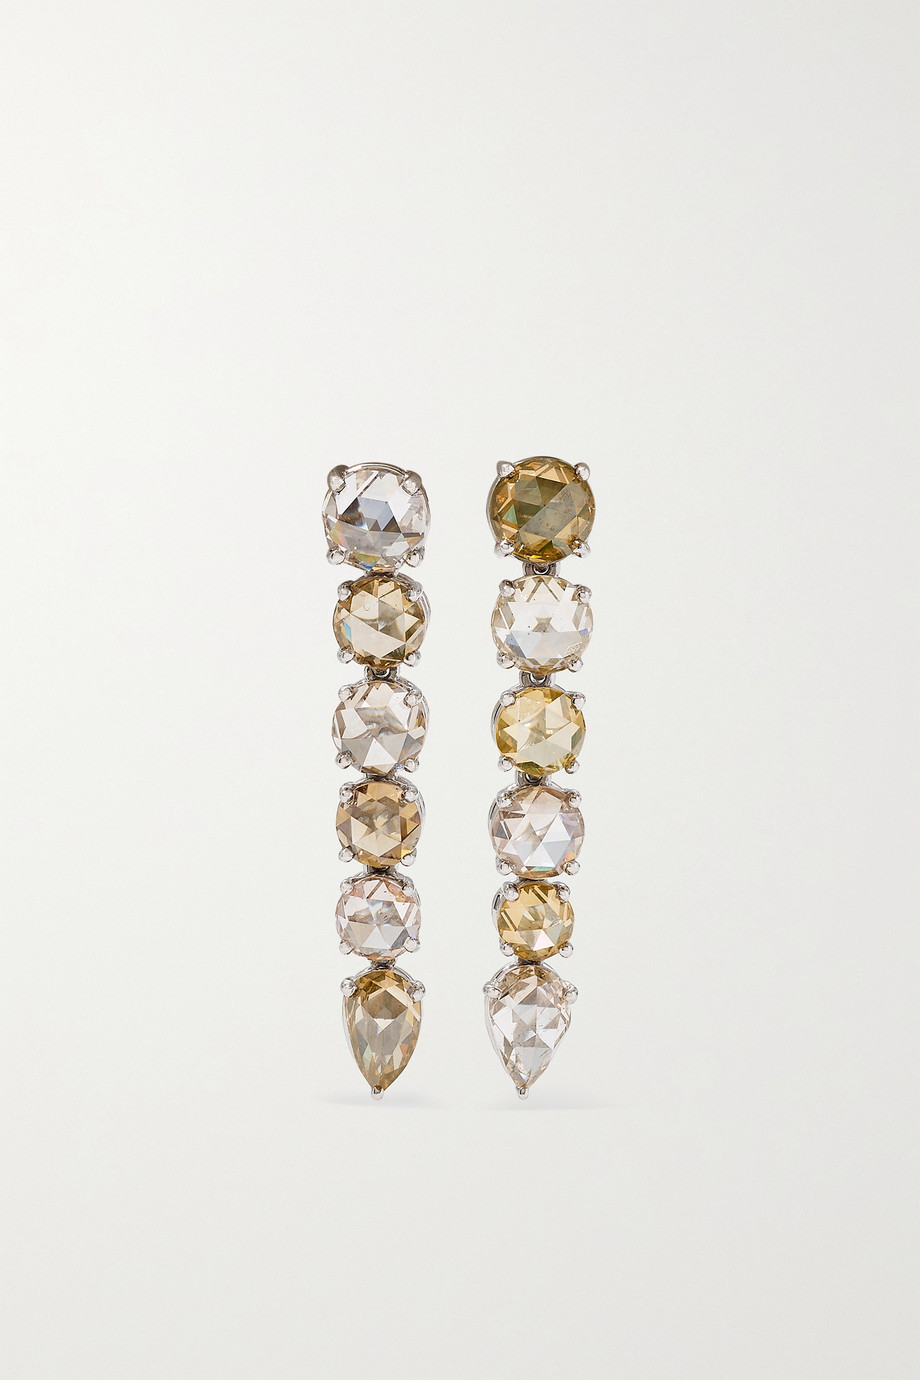 BAYCO Platinum diamond earrings